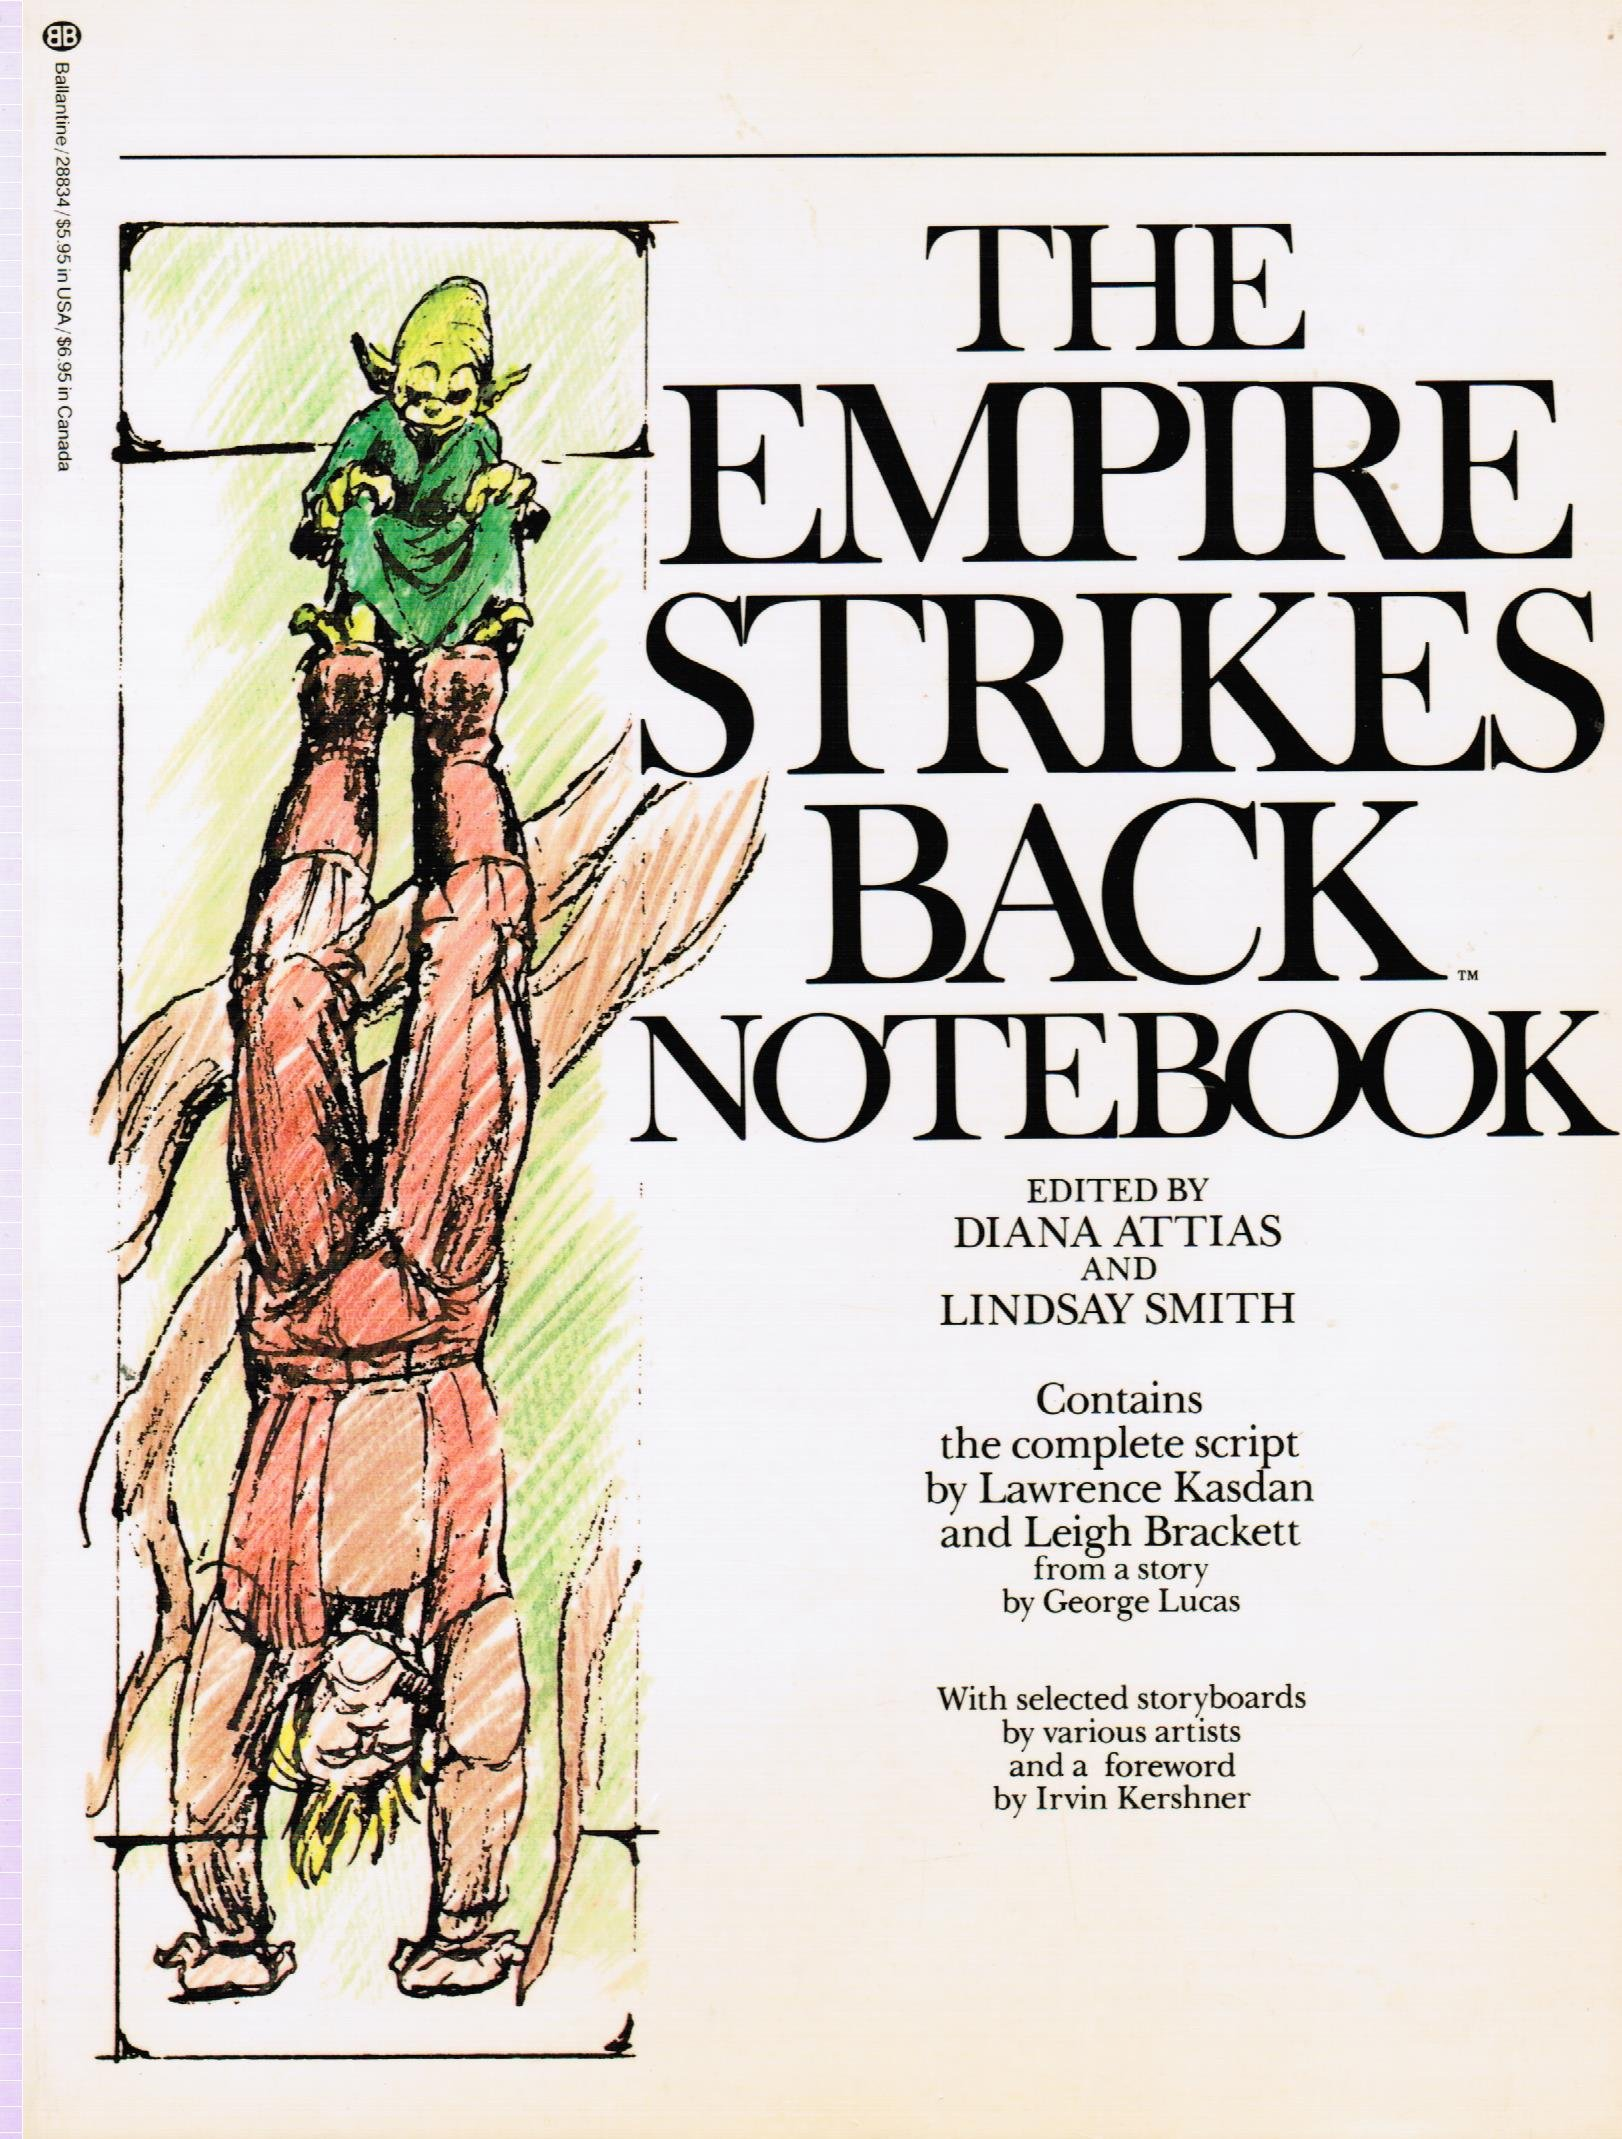 Star Wars Episode V: The Empire Strikes Back Screenplay